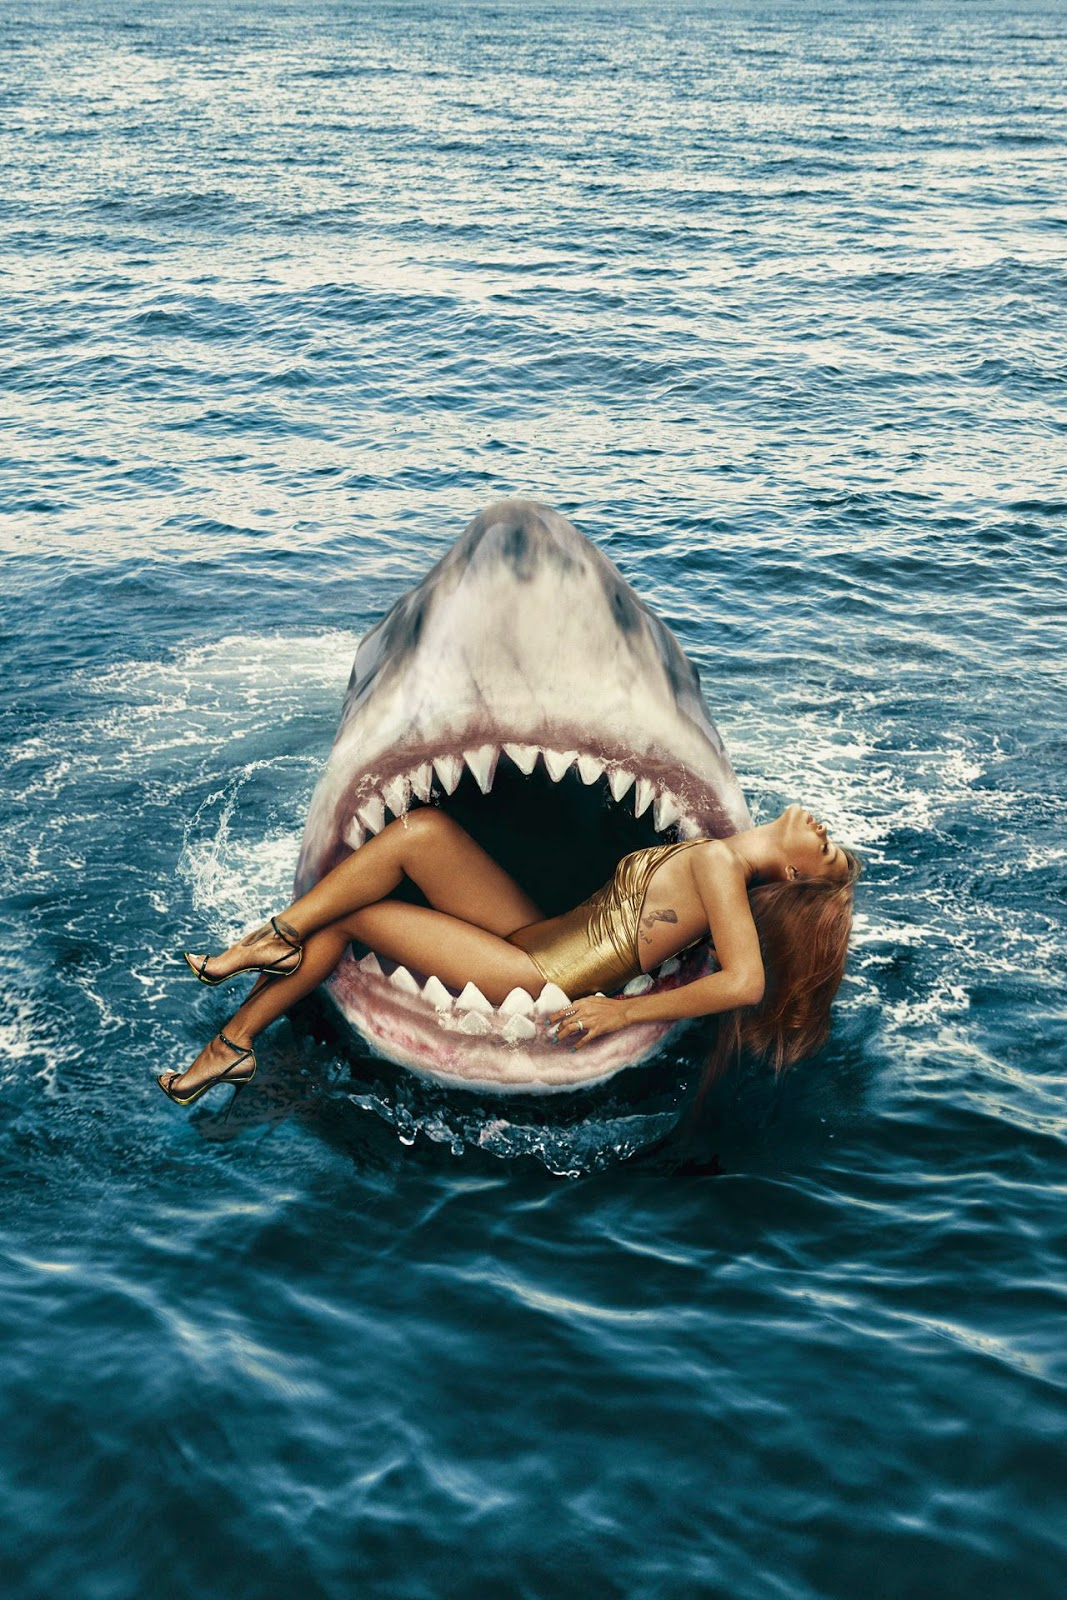 Rihanna does a photoshoot with sharks for Harper's Bazaar US March 2015 edition